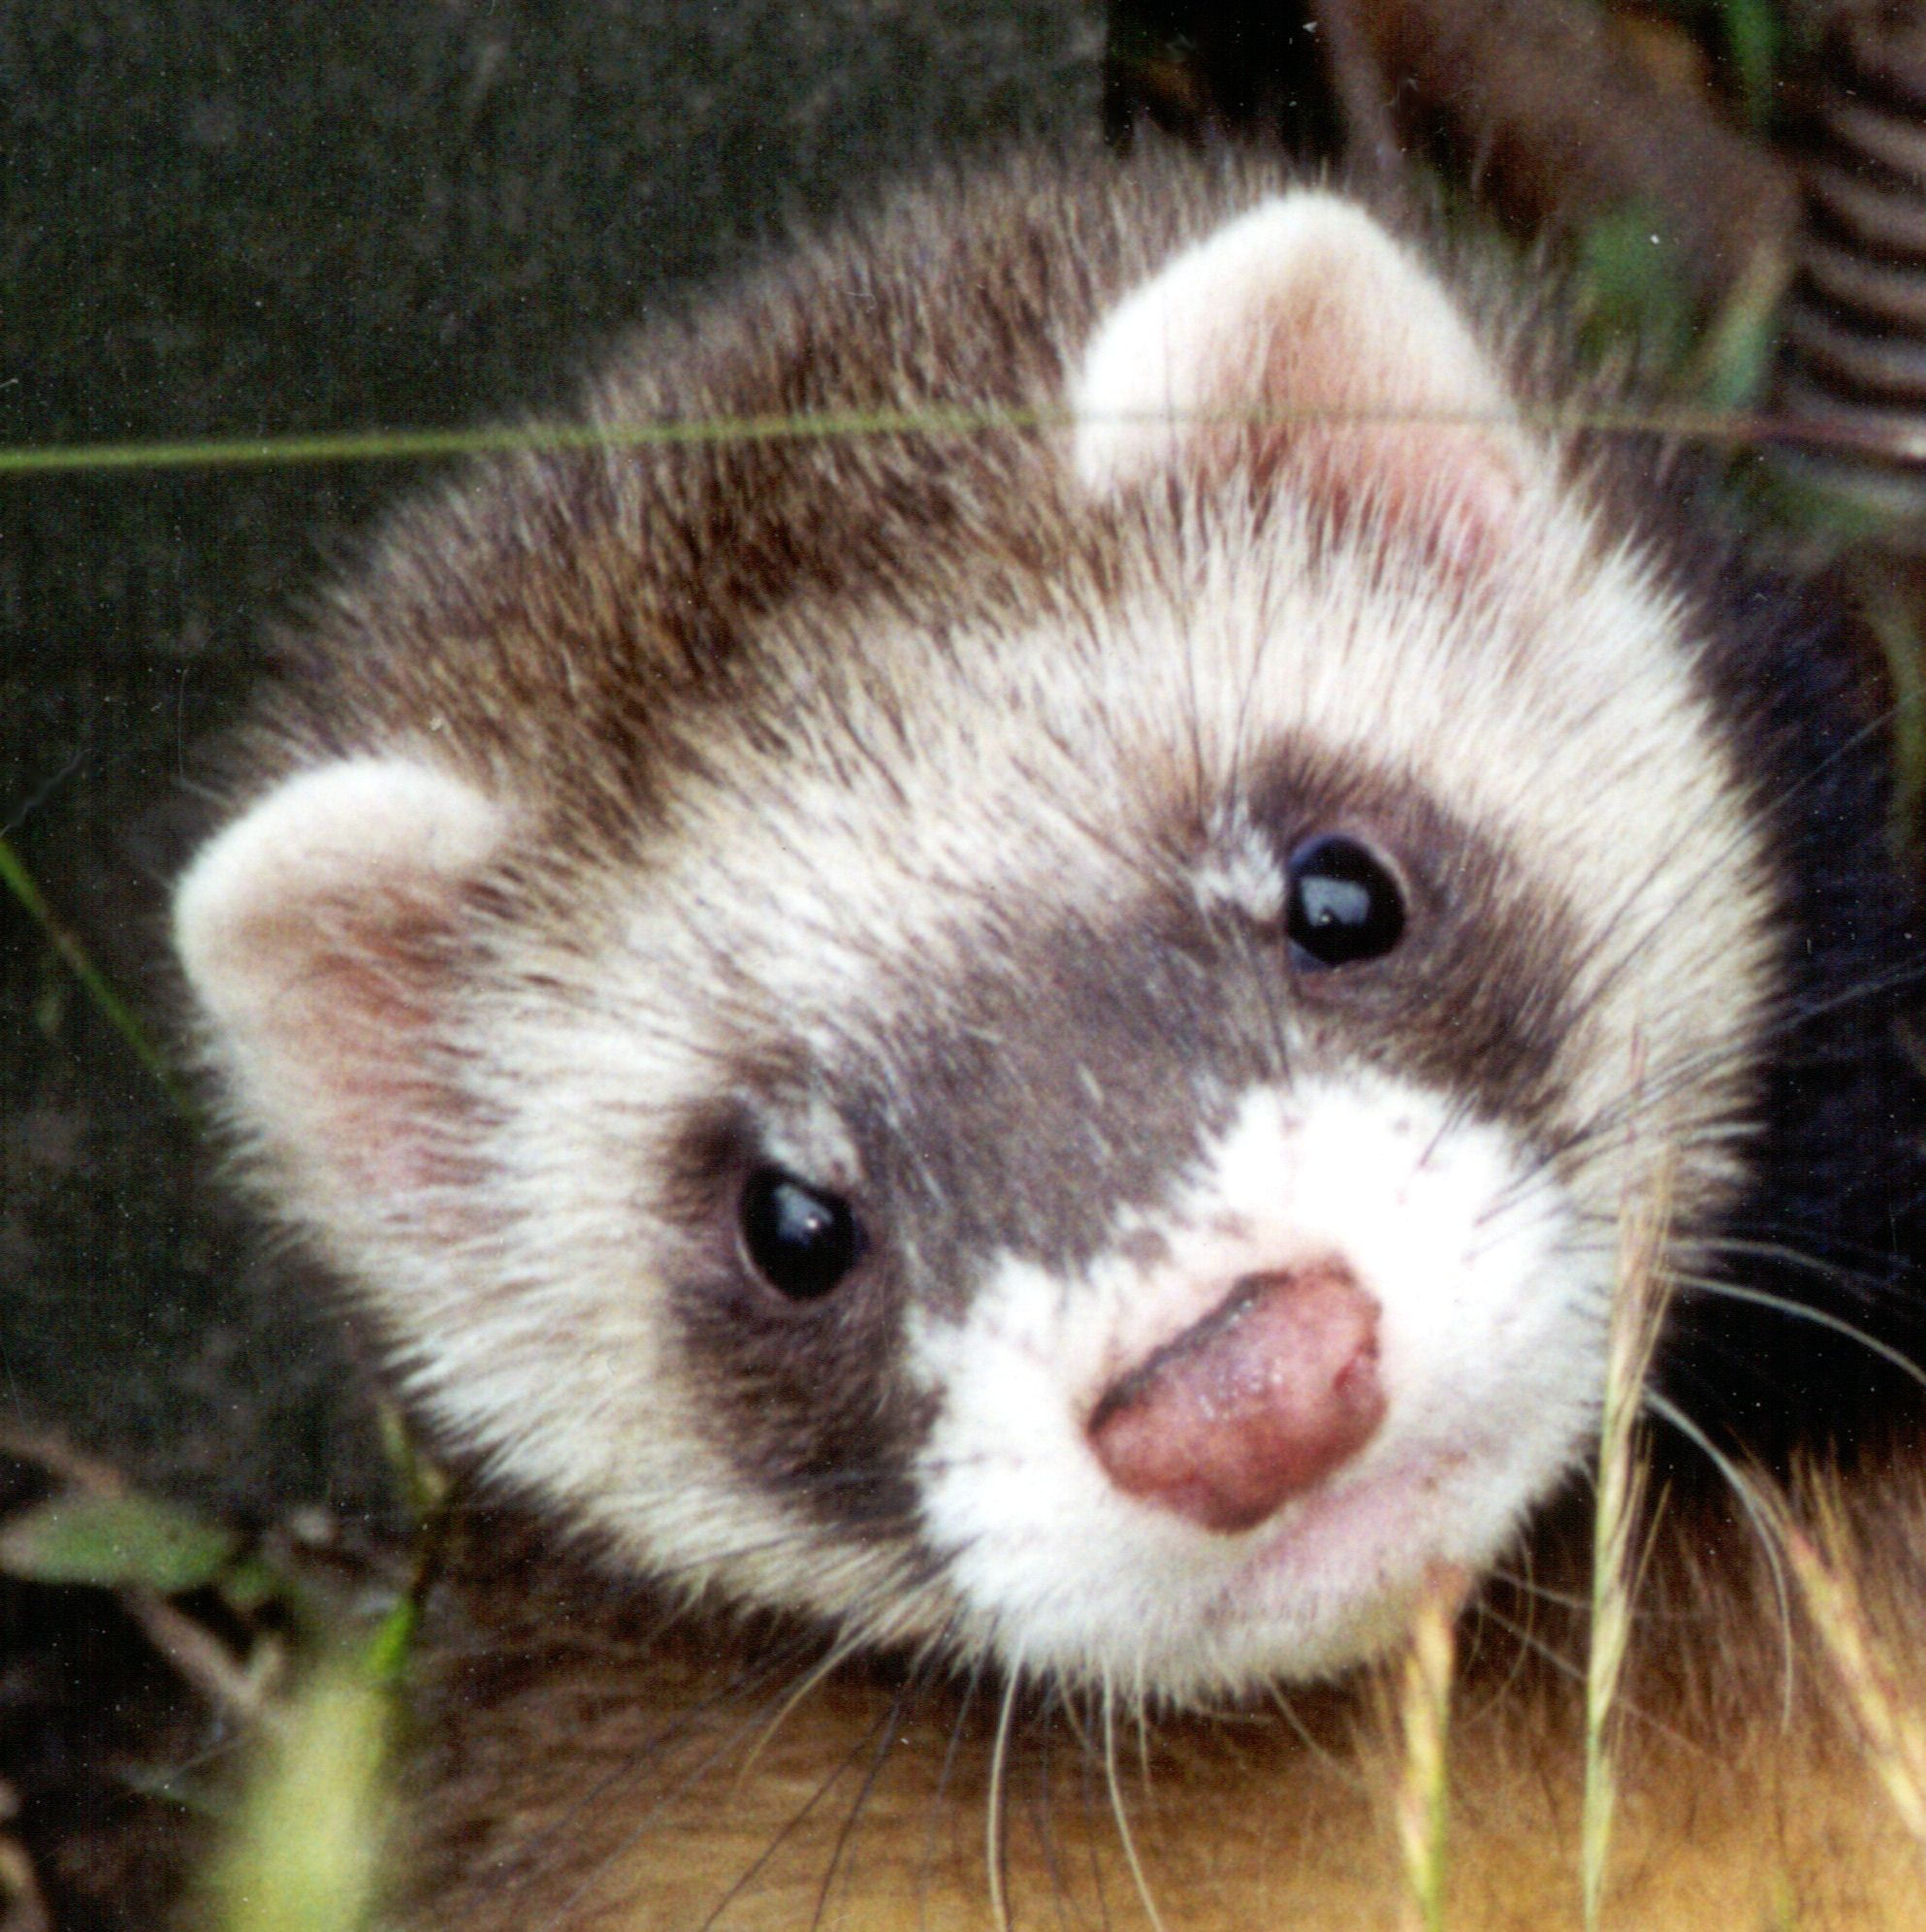 Oc Watchdog Blog Orange County Register Is It Time To Legalize Ferrets In California Cute Ferrets Cute Animals Funny Ferrets